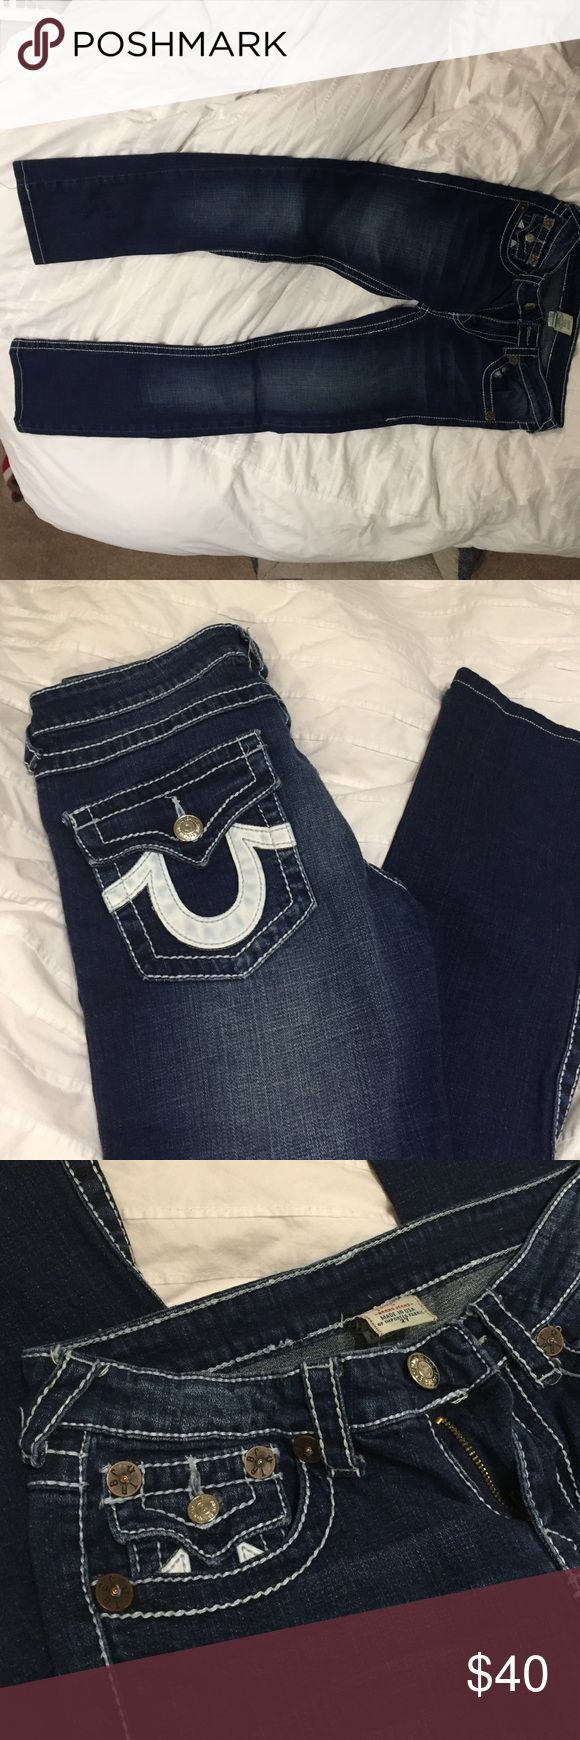 True Religion Women's Jeans authentic Size 27 - but fits more like 25-26. Runs small. I've worn it a few times and selling because they don't fit me anymore. Great condition. True Religion Pants Straight Leg